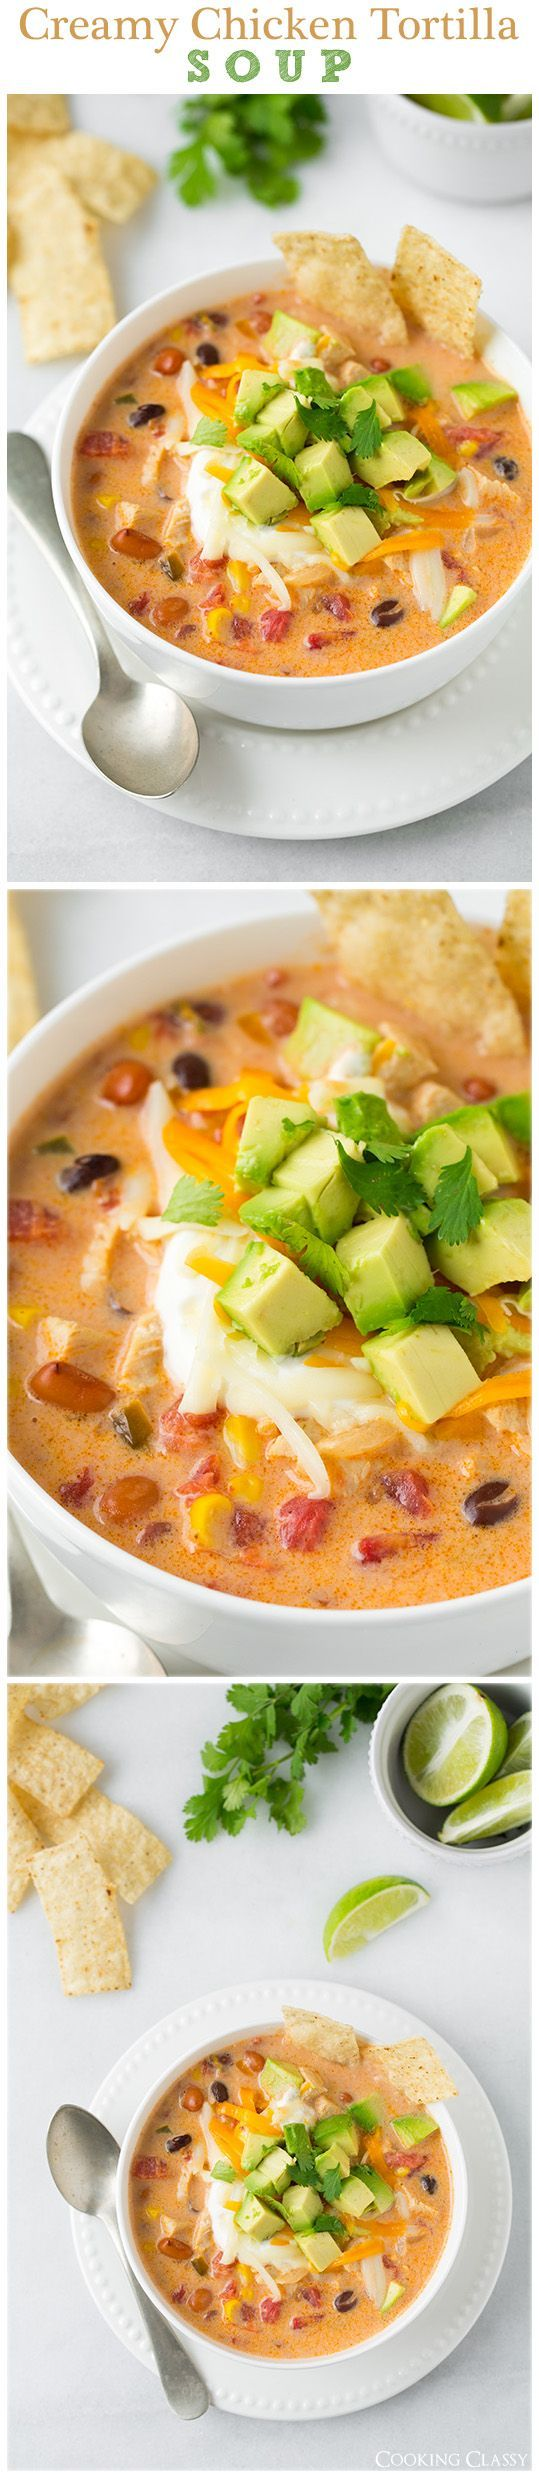 shoes canada online cheap Creamy Chicken Tortilla Soup   this soup is seriously delicious   Hearty and comforting also GF